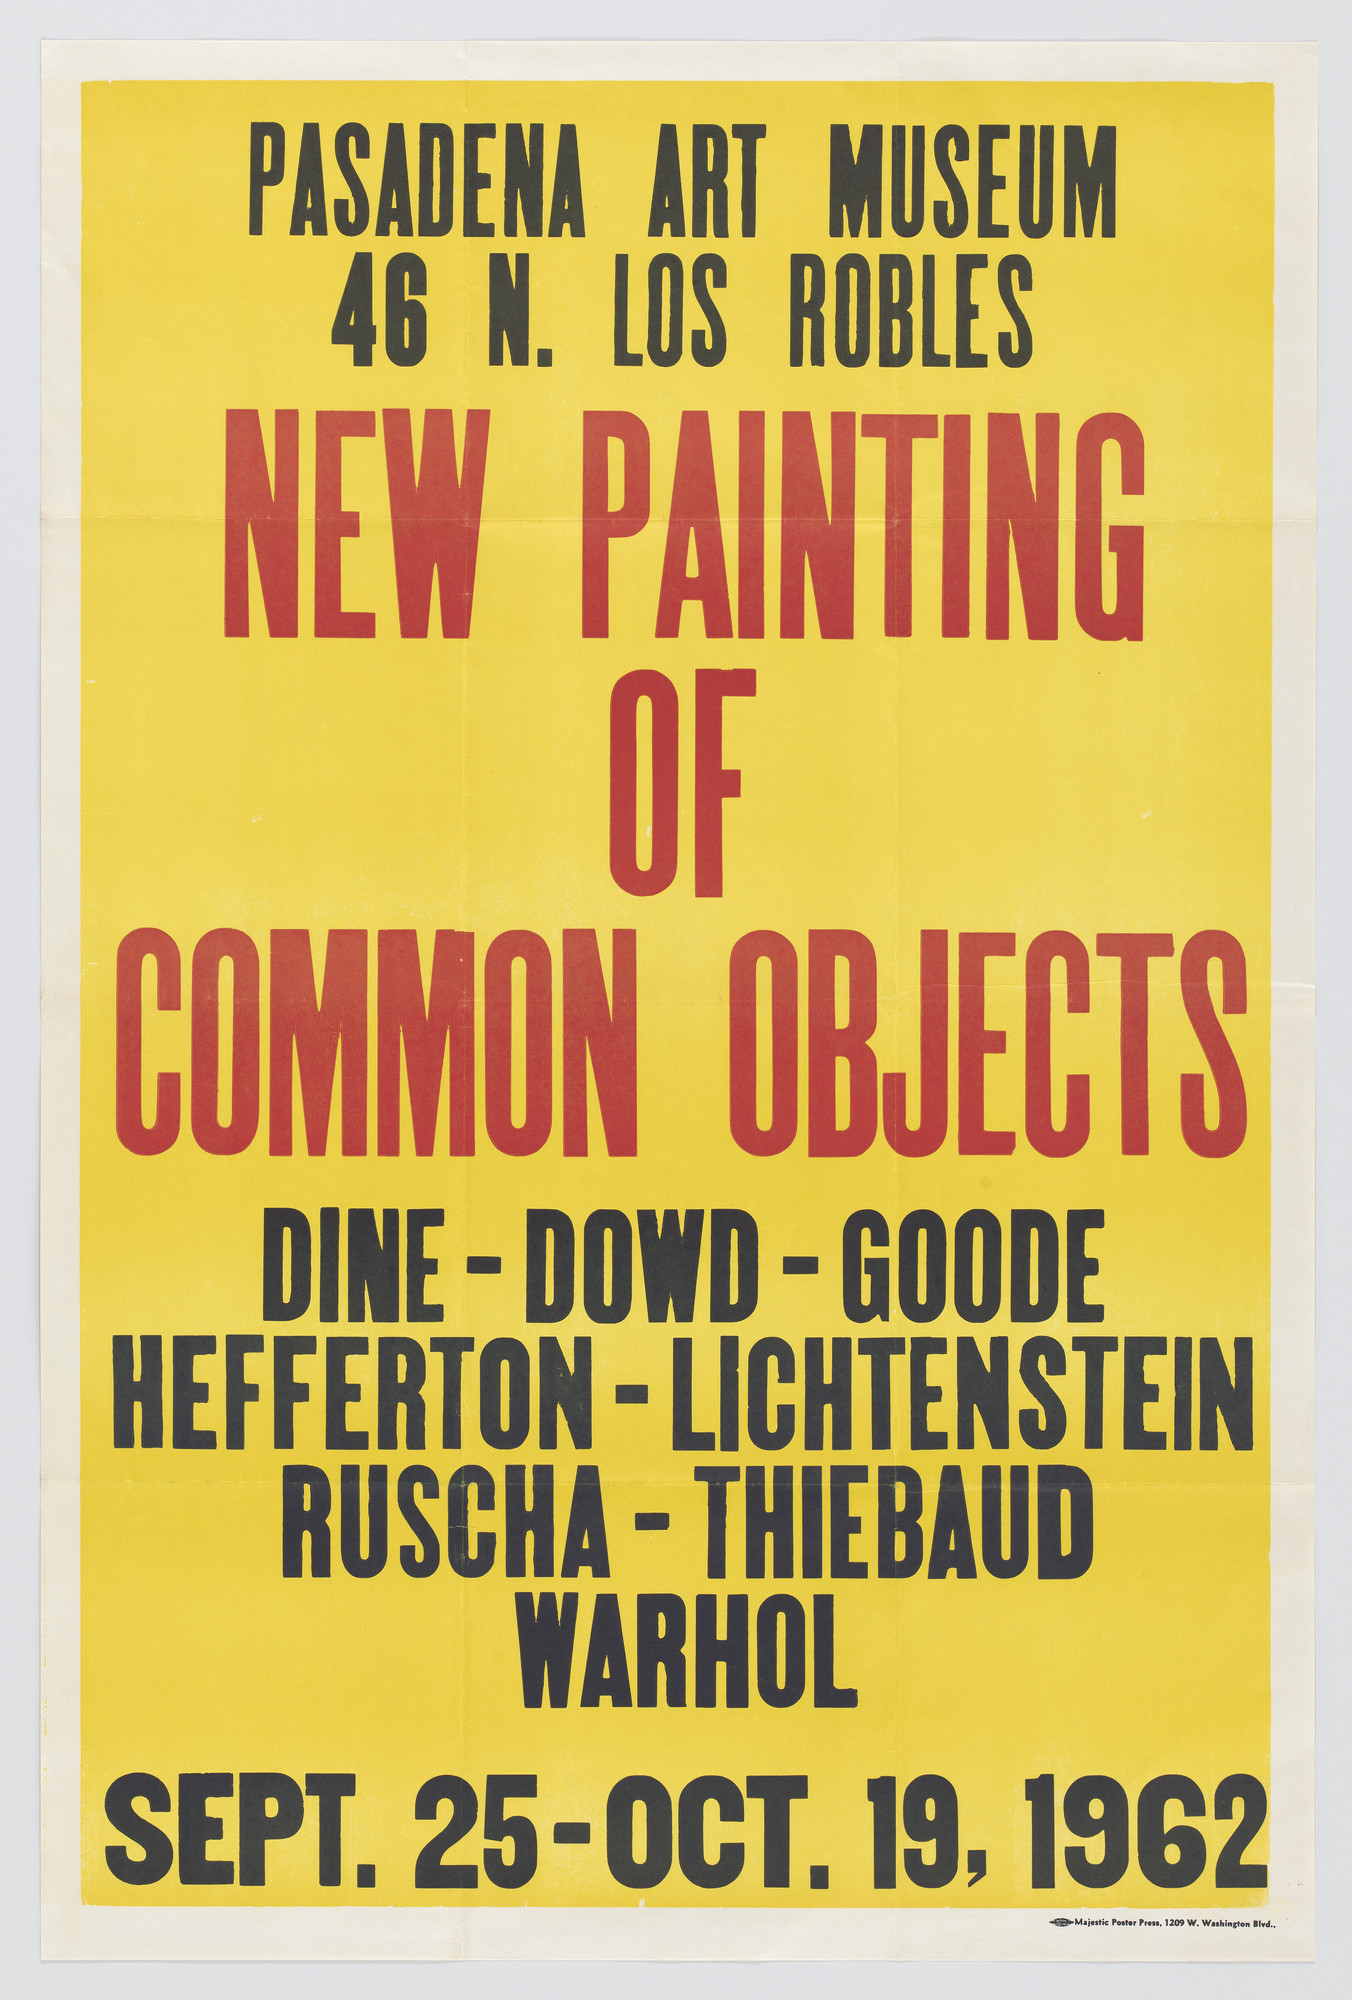 Edward Ruscha. New Painting of Common Objects. 1962